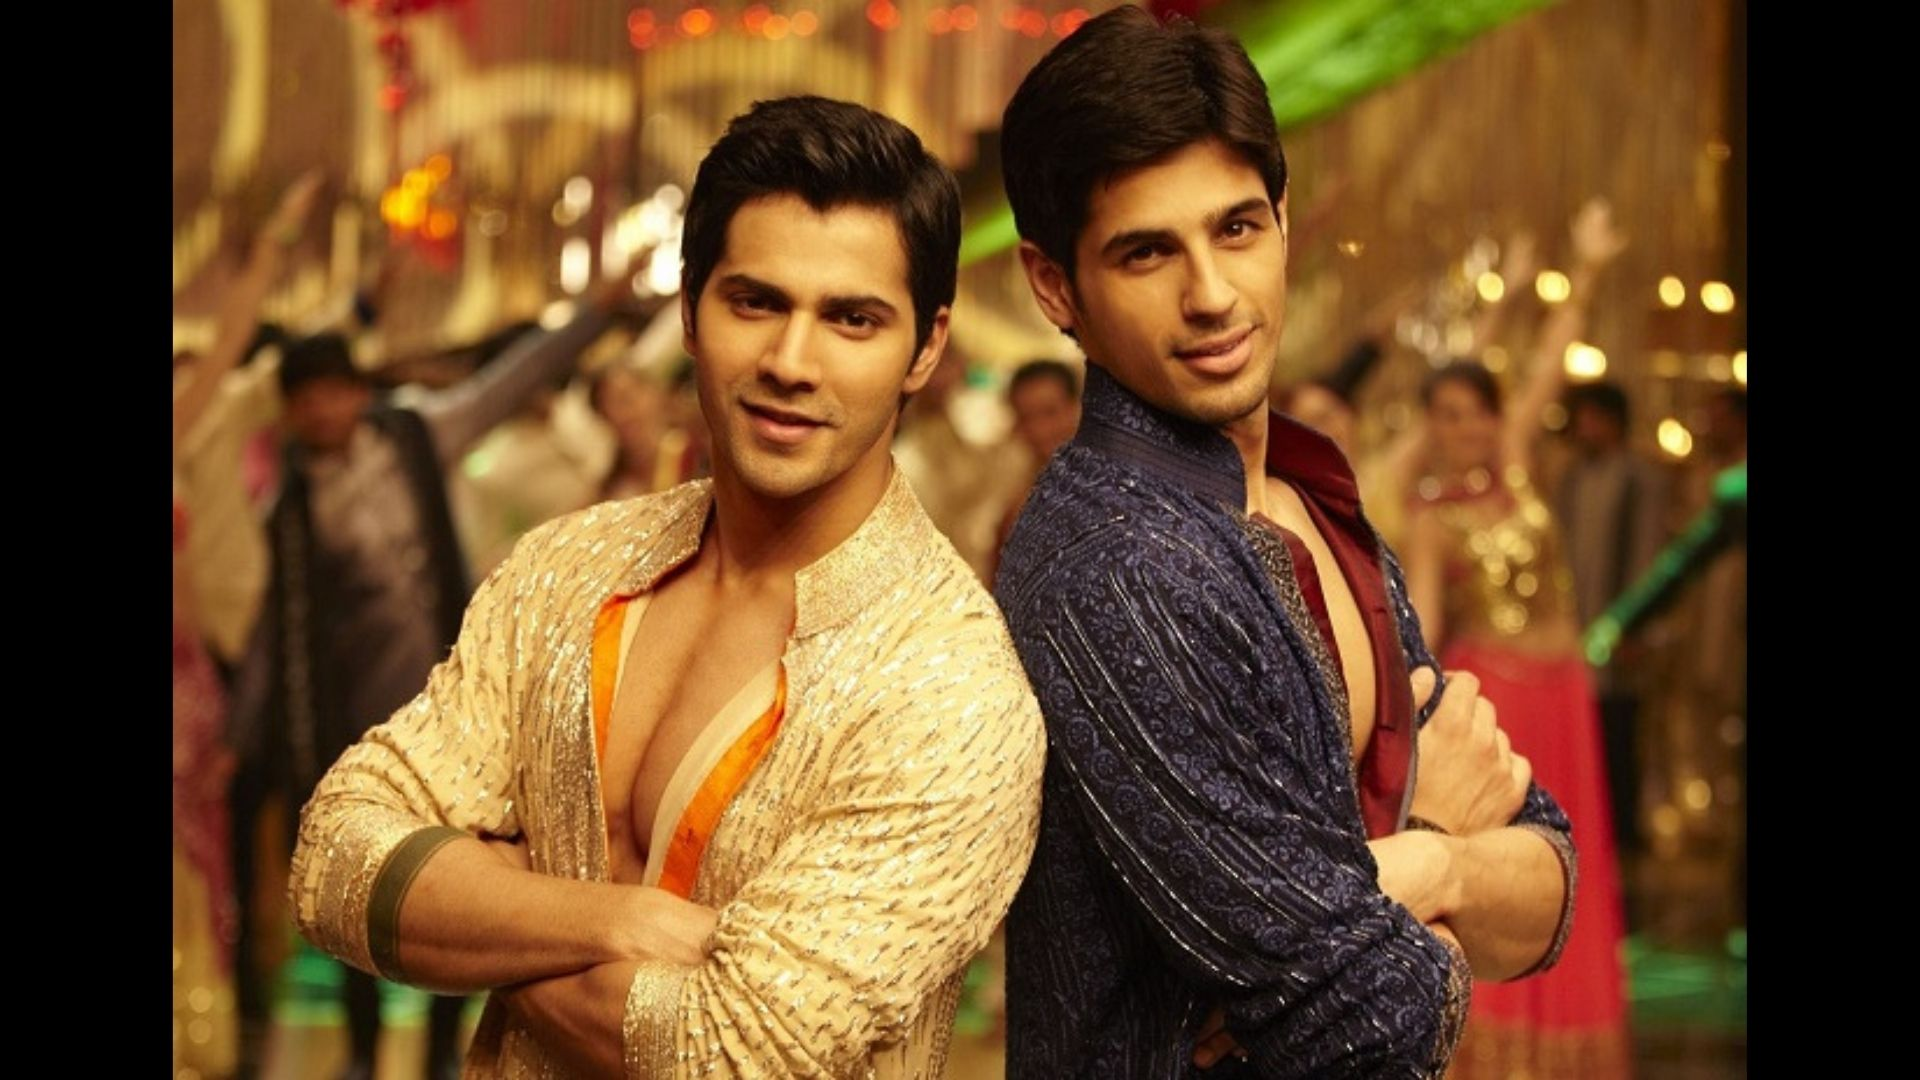 Student Of The Year Turns 9: Sidharth Malhotra Reacts To Fans Trends; Varun Dhawan Shares Appreciation Post Via Gram